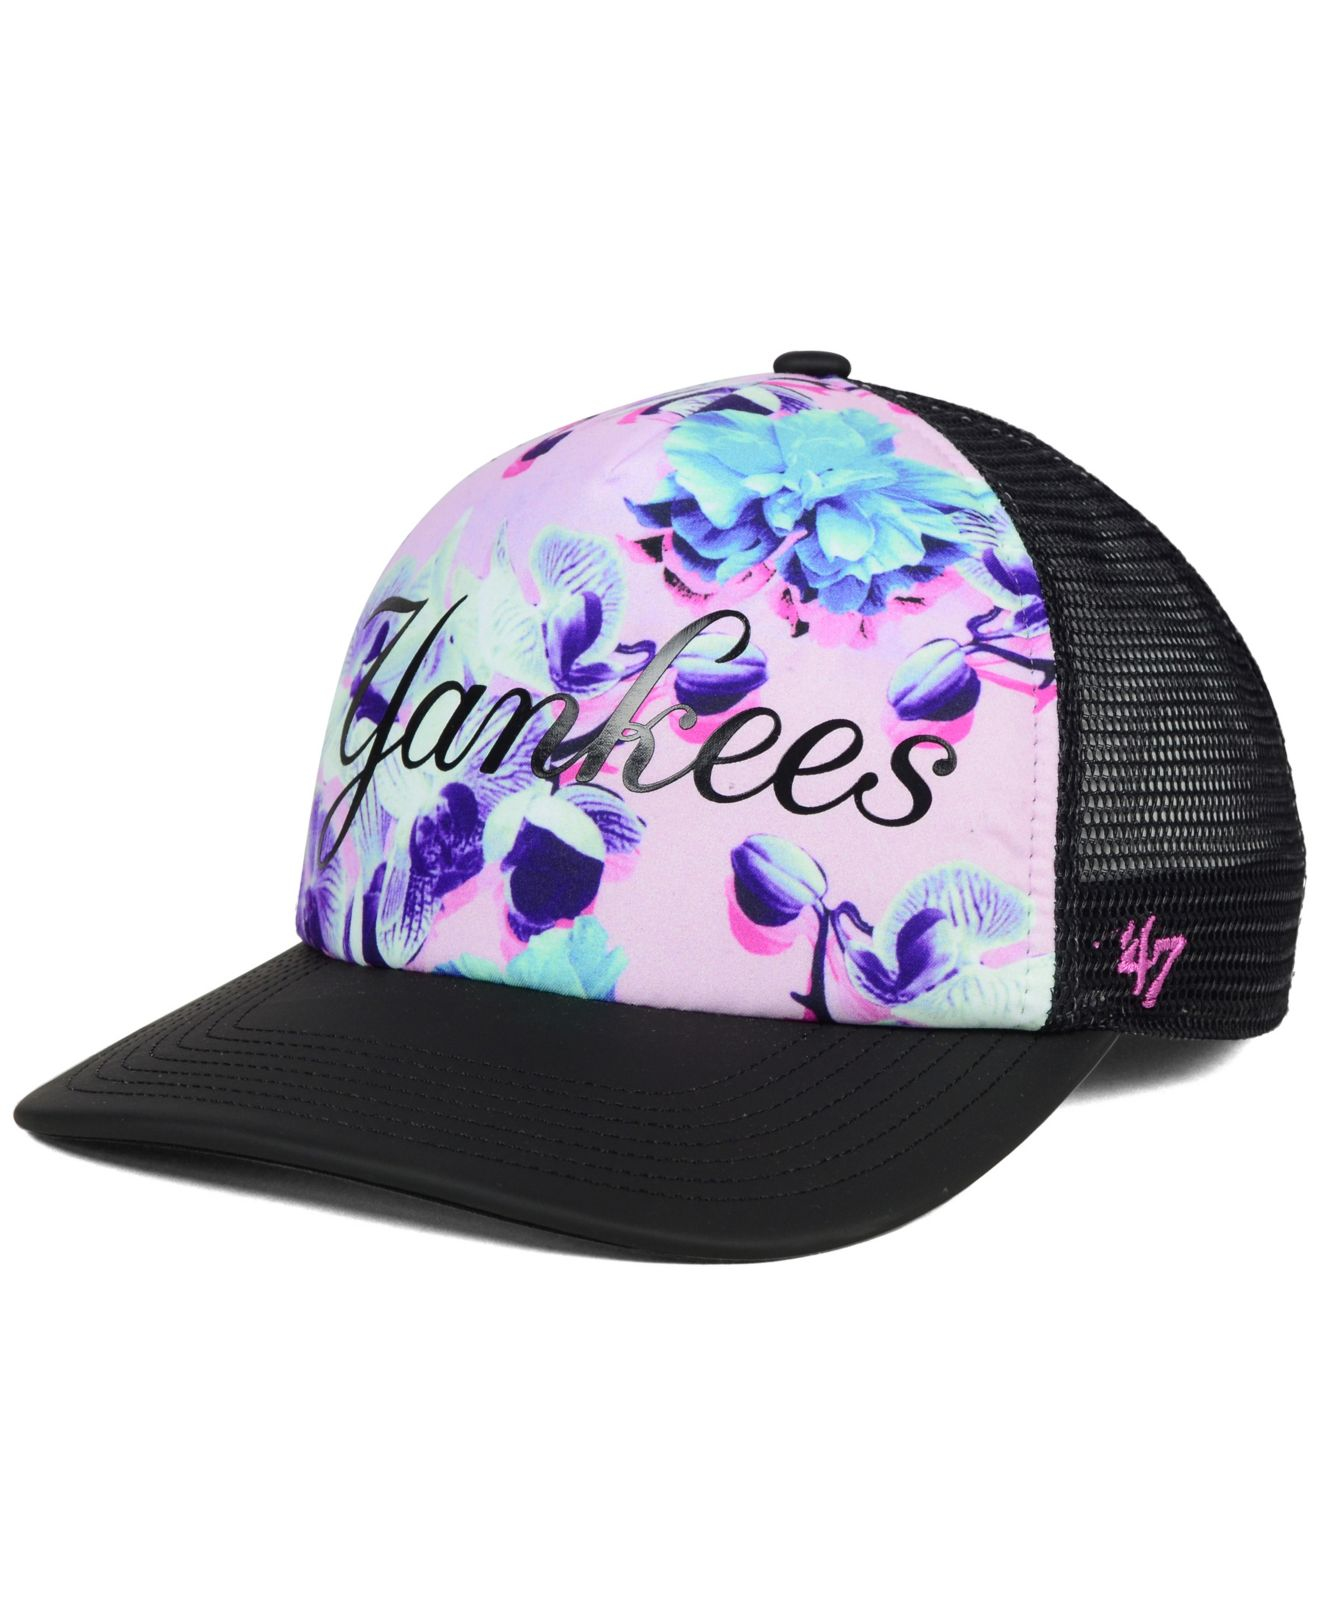 47 Brand New York Yankees X-ray Floral Captain Cap